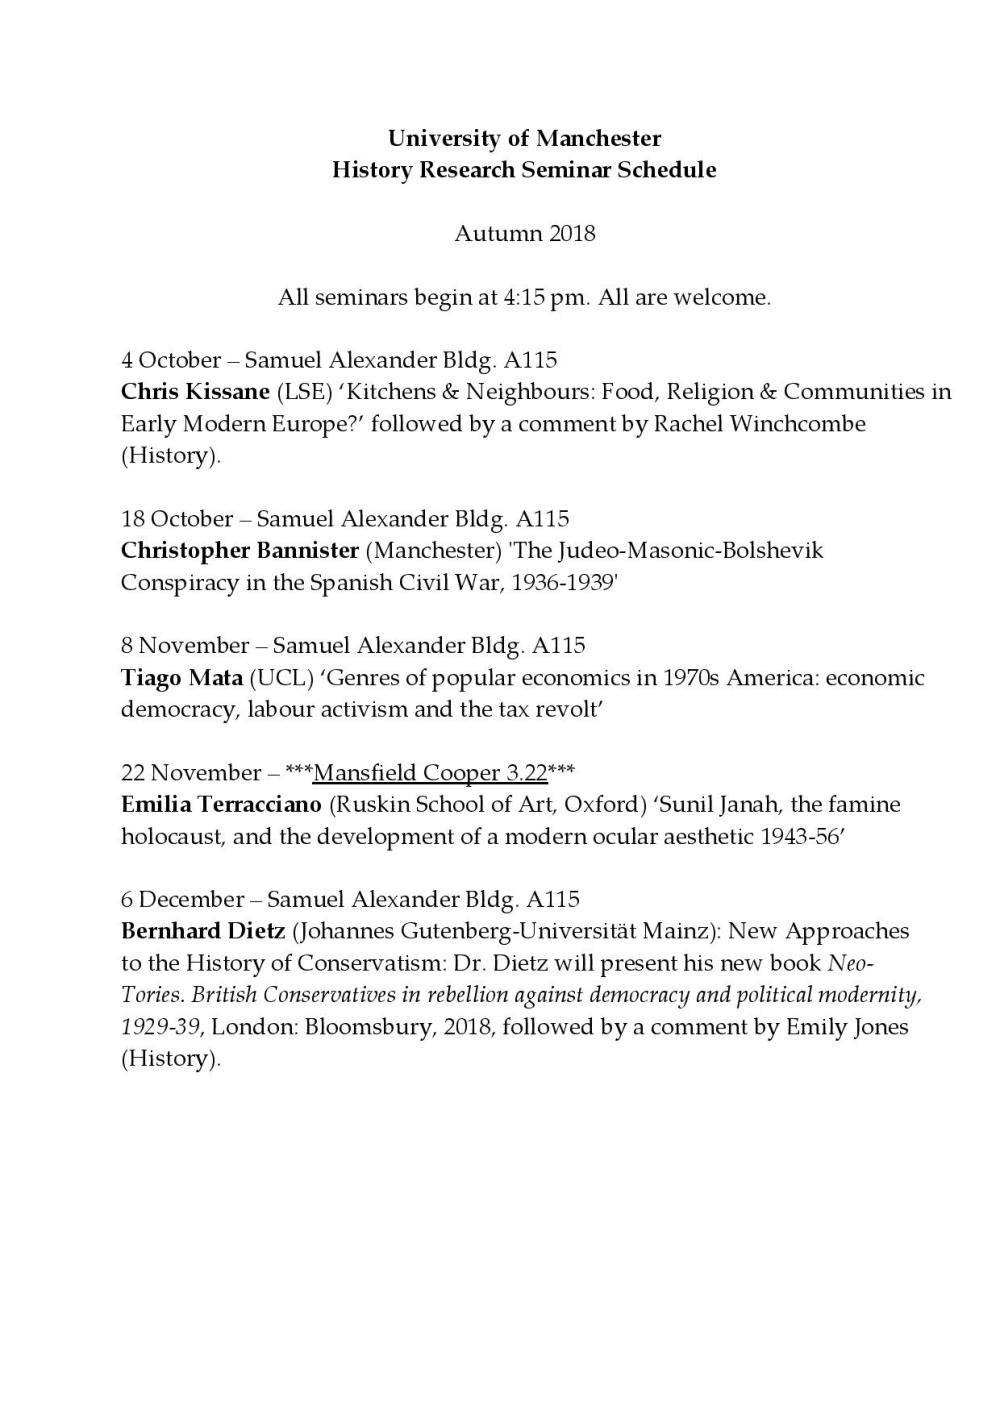 History Research Seminars Autumn 2018-page-001